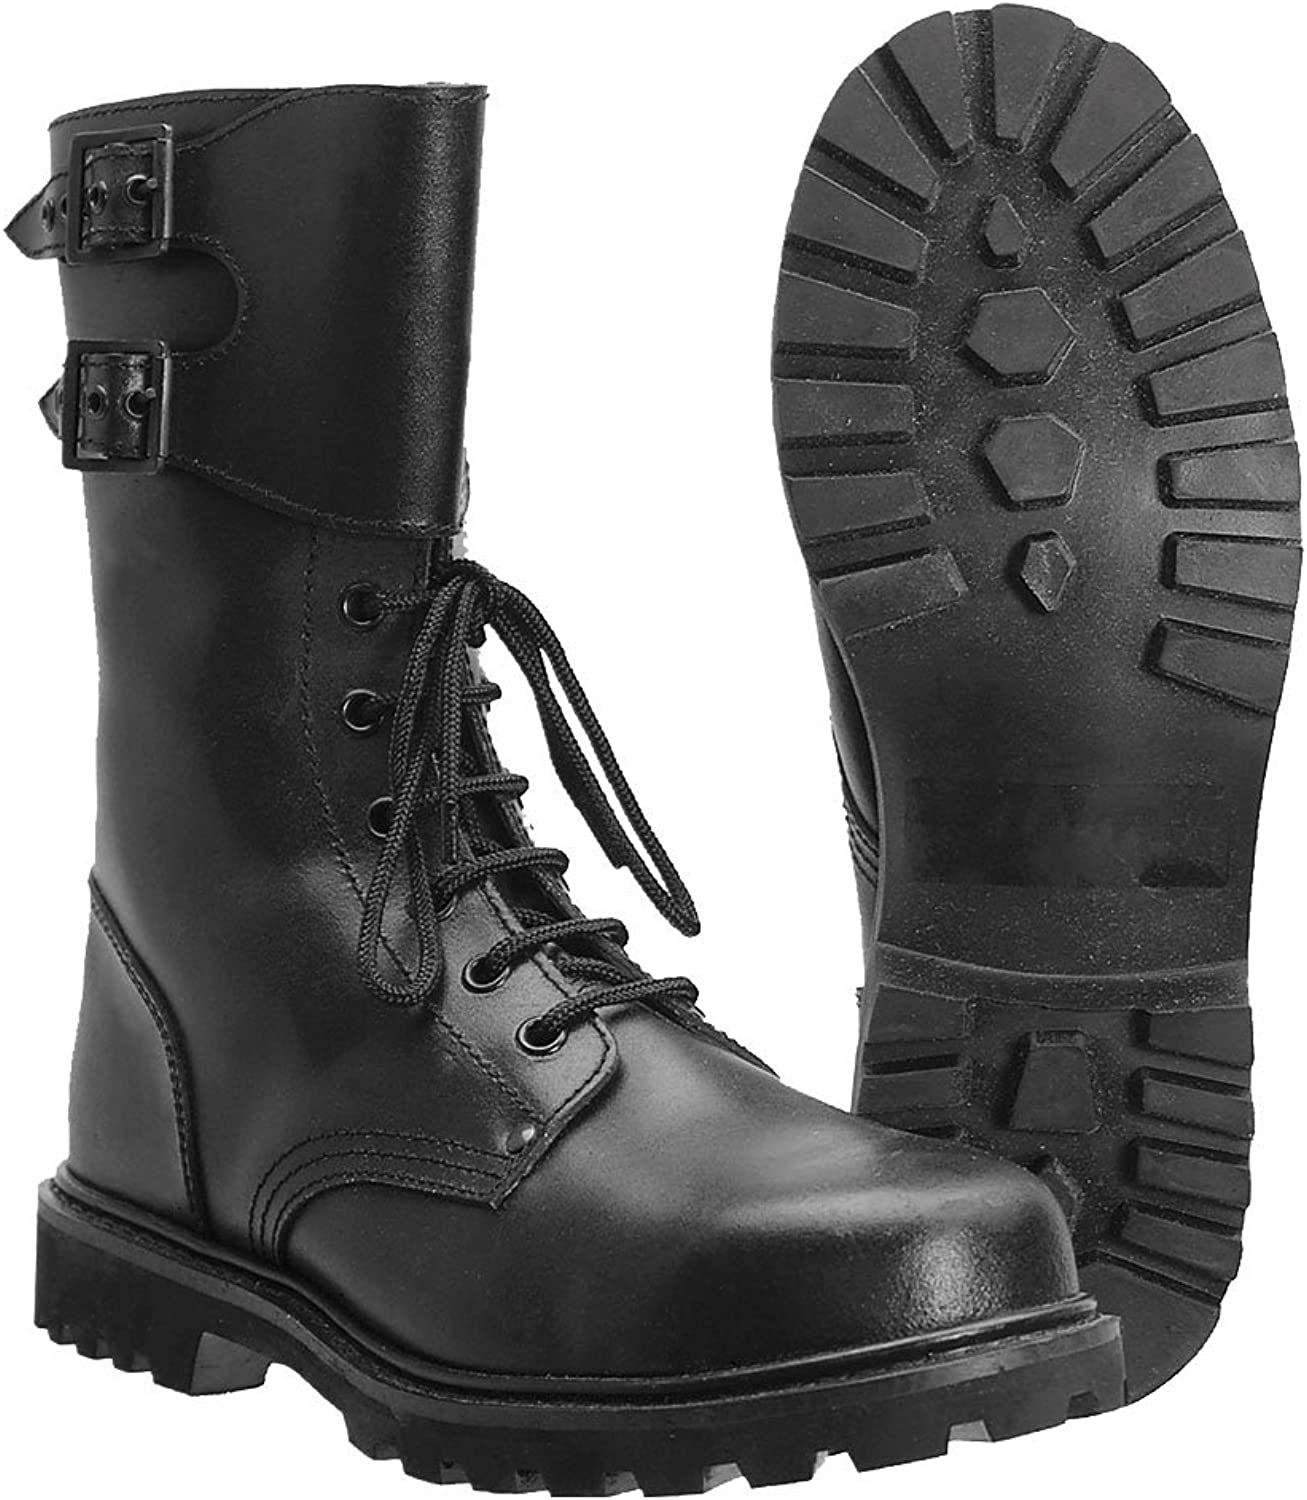 Black French Military Style Ranger Boots